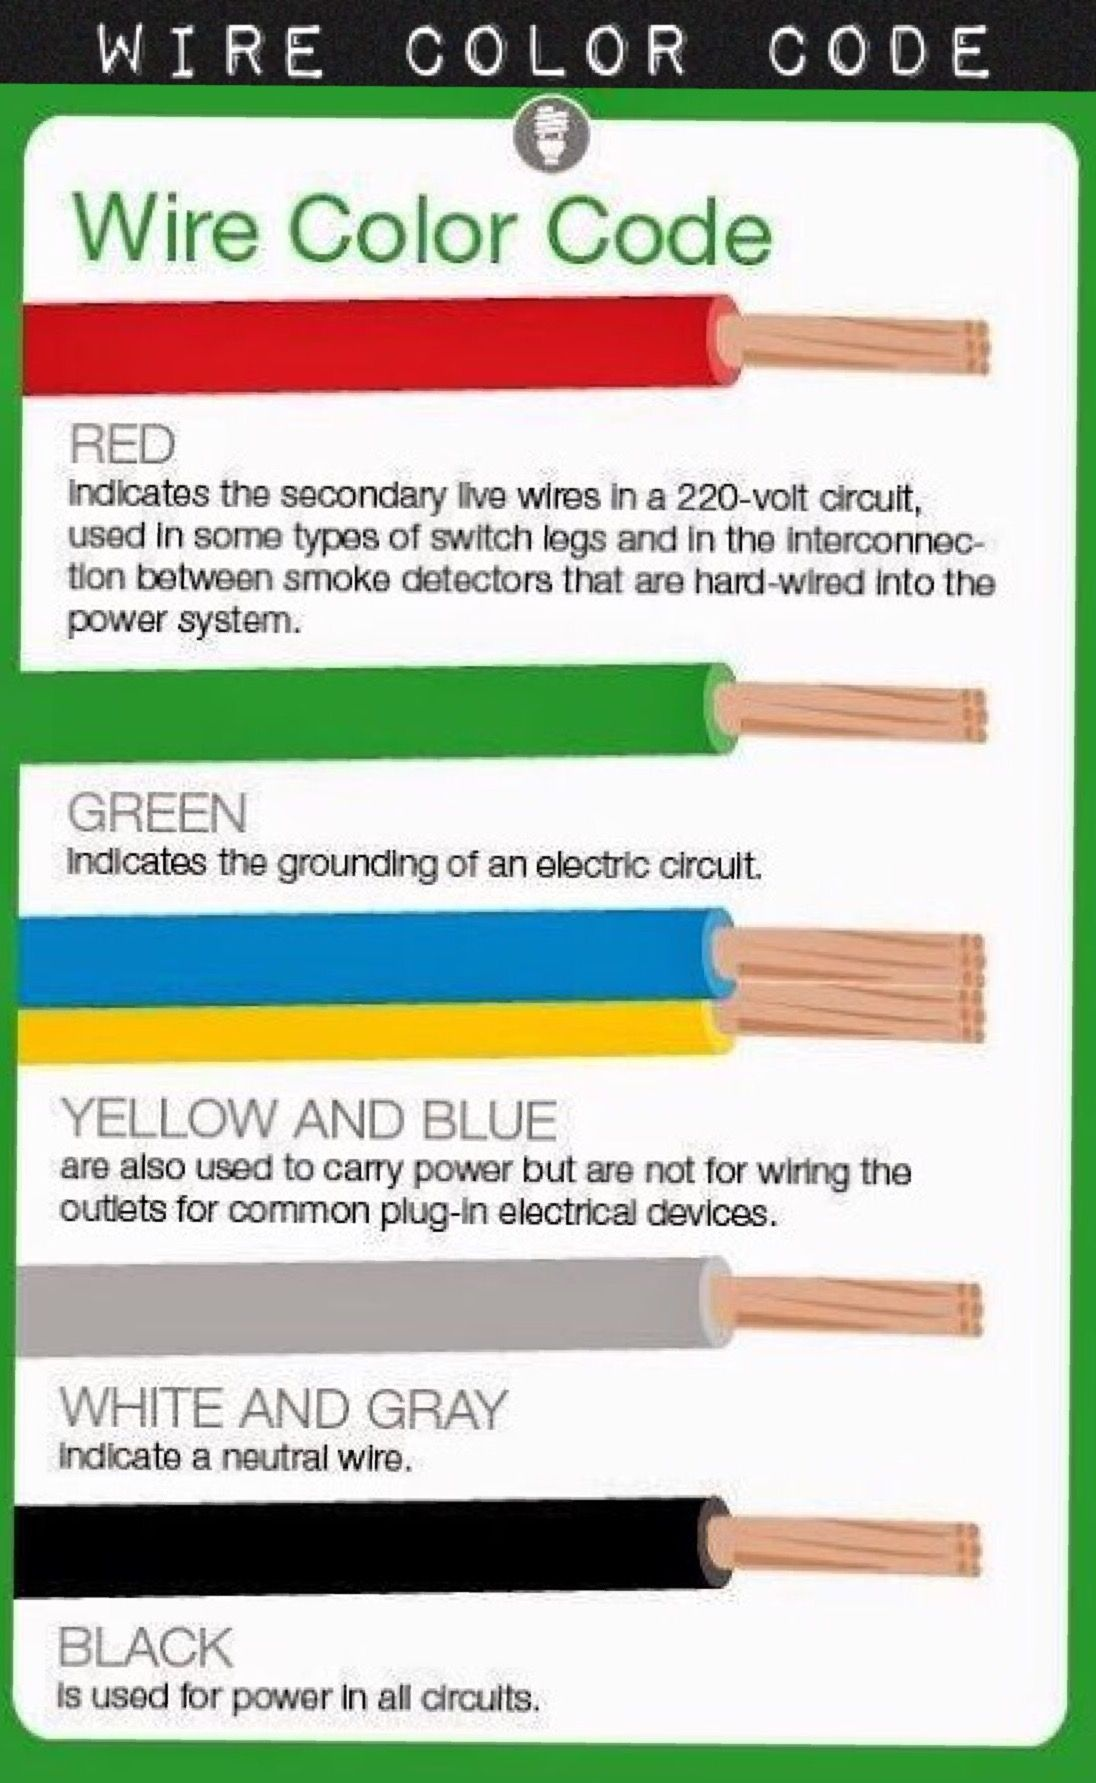 What Do Electrical Wire Color Codes Mean Garage Wood Shop Home Wiring For Dummies Cover Colors More Great Improvement Tips Visit Http Www